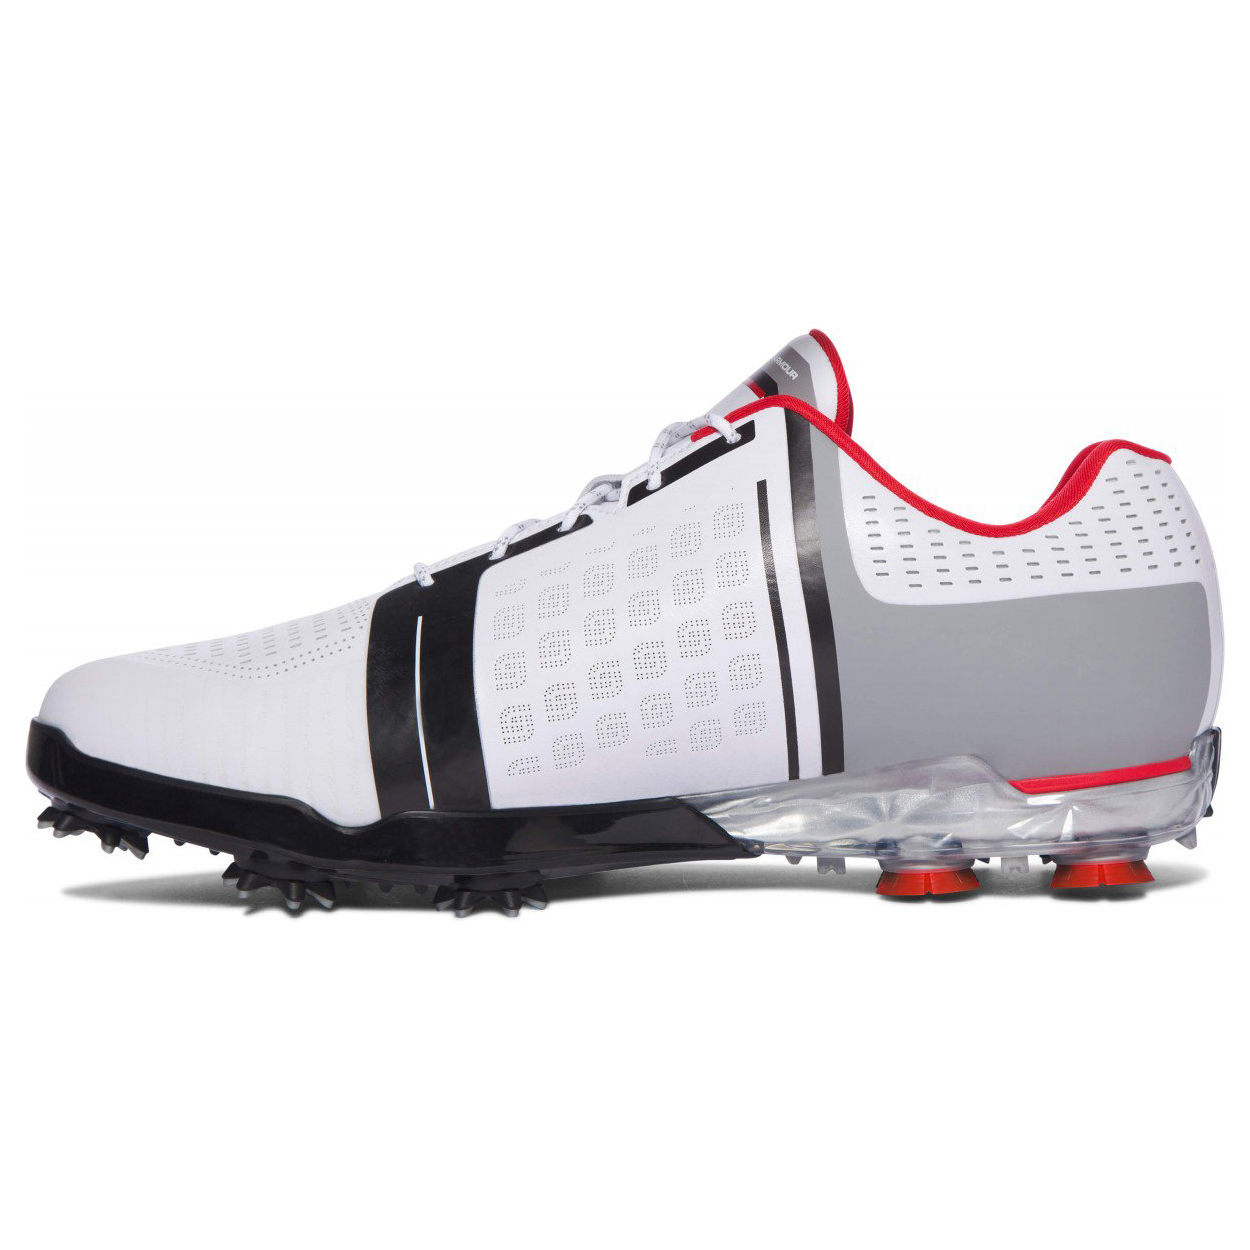 Under-Armour-Men-039-s-Spieth-I-Golf-Shoes-Brand-New thumbnail 19